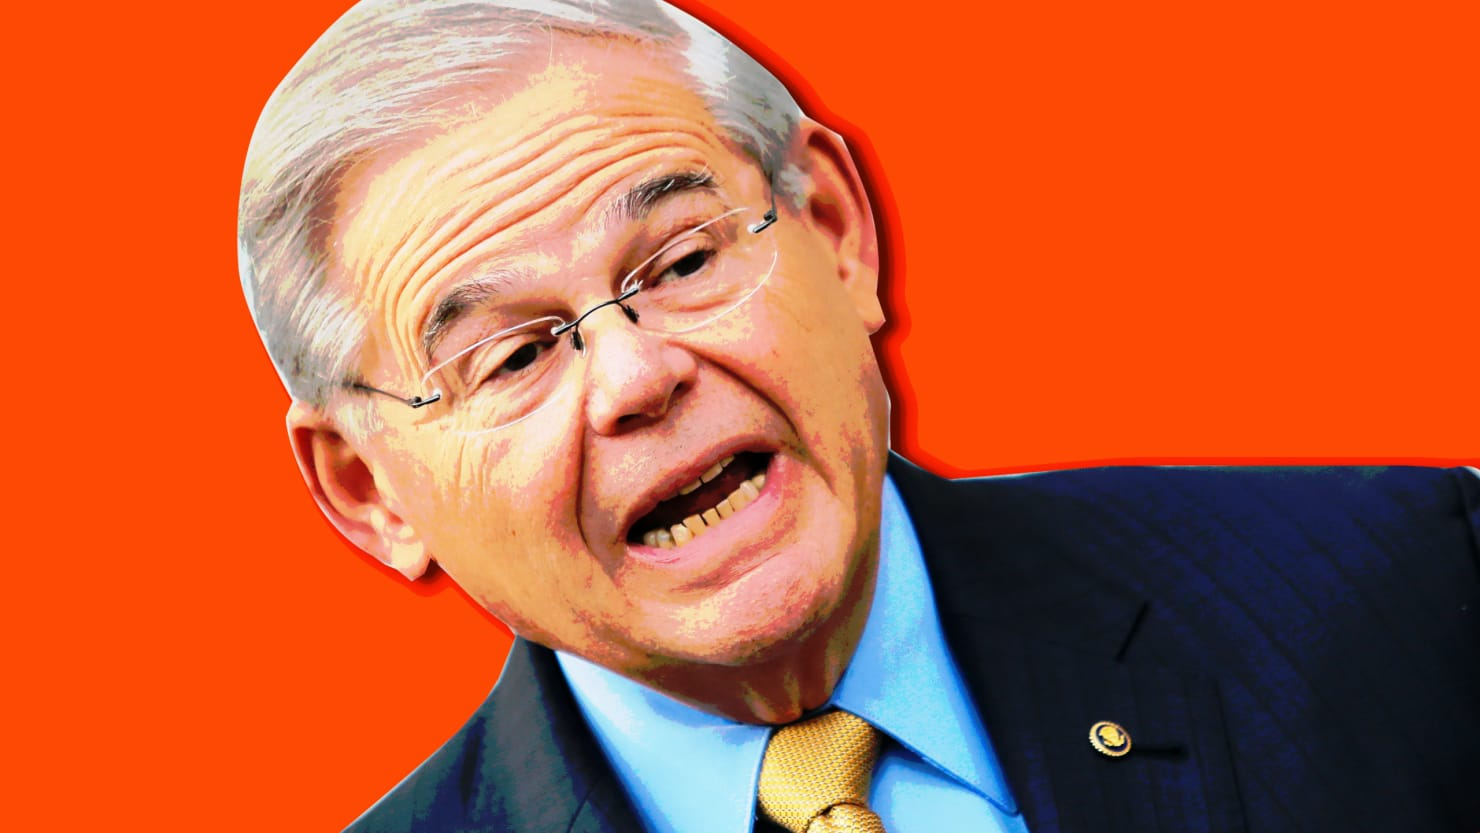 If Robert Menendez is convicted, it could mean the end of Obamacare.